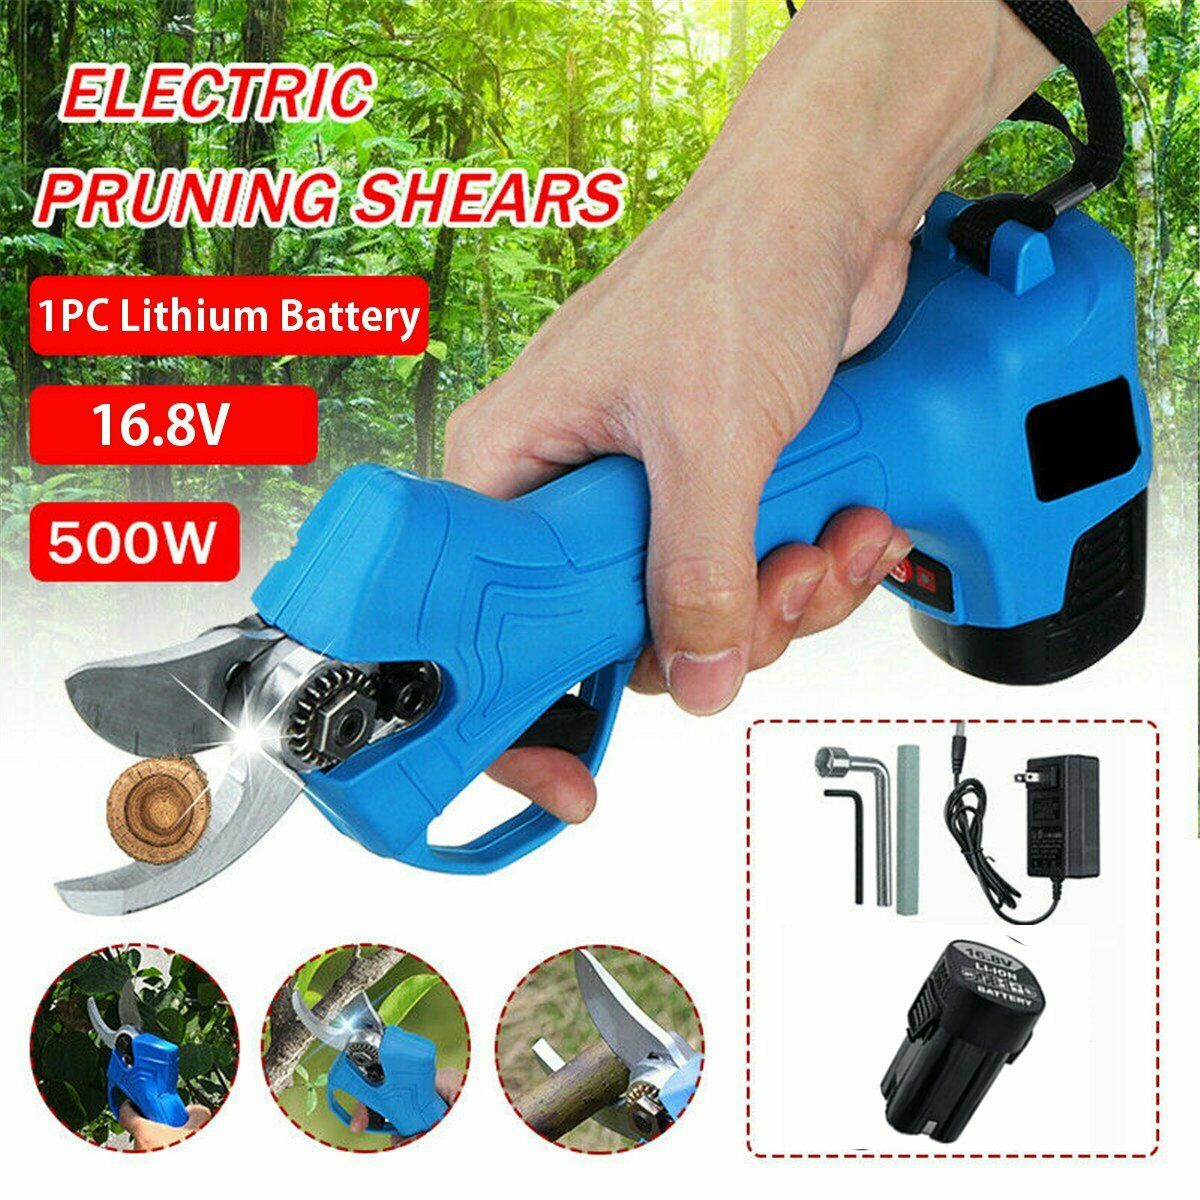 Electric Pruning Pruner Shears Cutting Tool Trimmer Garden Tree Nursery Grafting